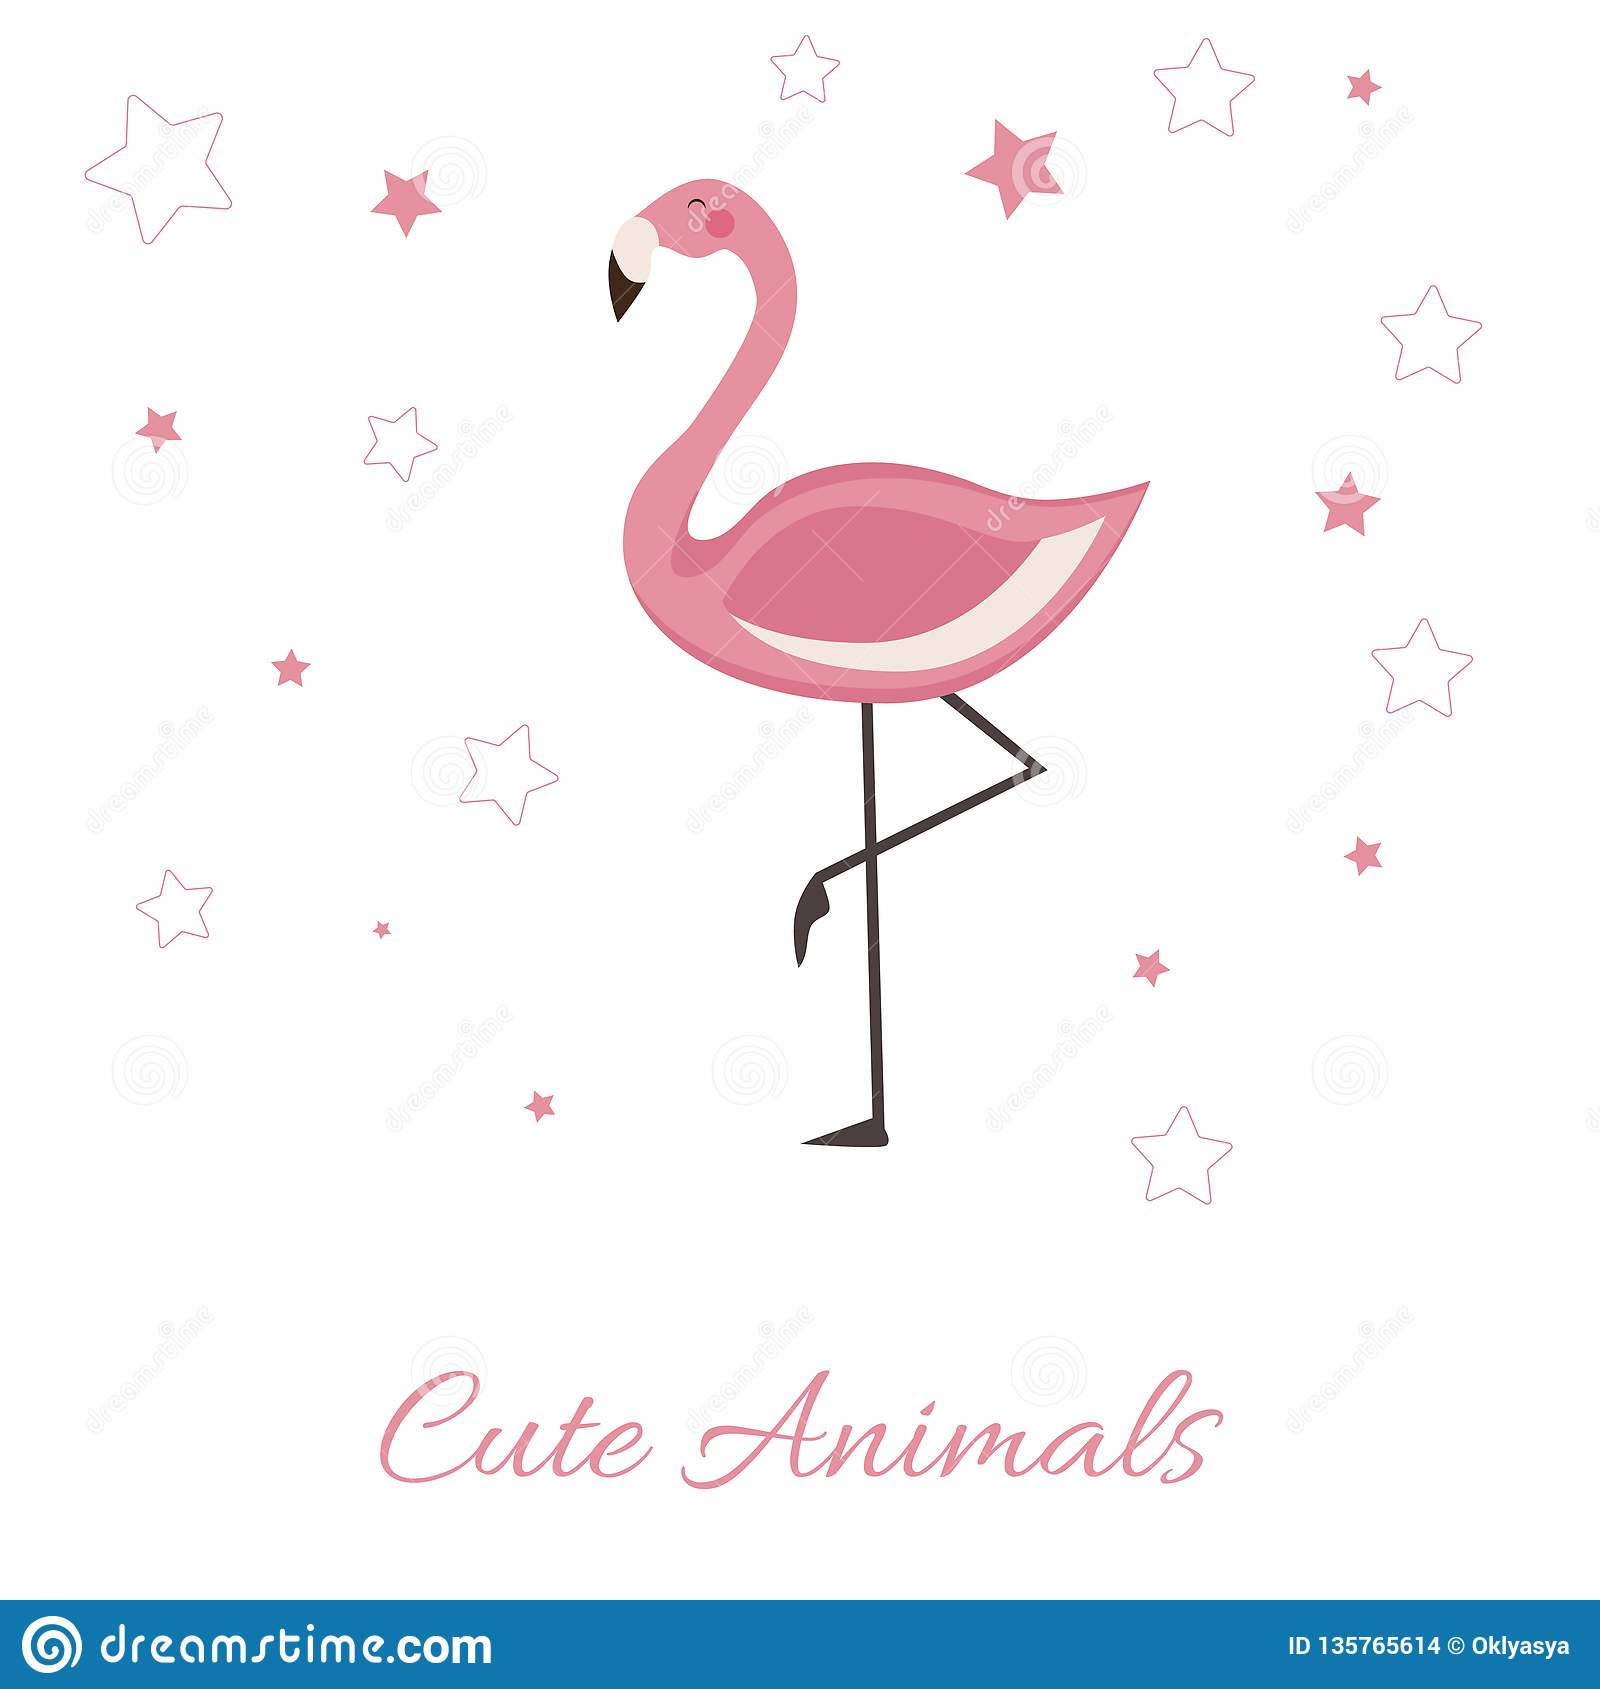 Cute Animals vector illustration with Pink Flamingo. lettering isolated illustration on white background